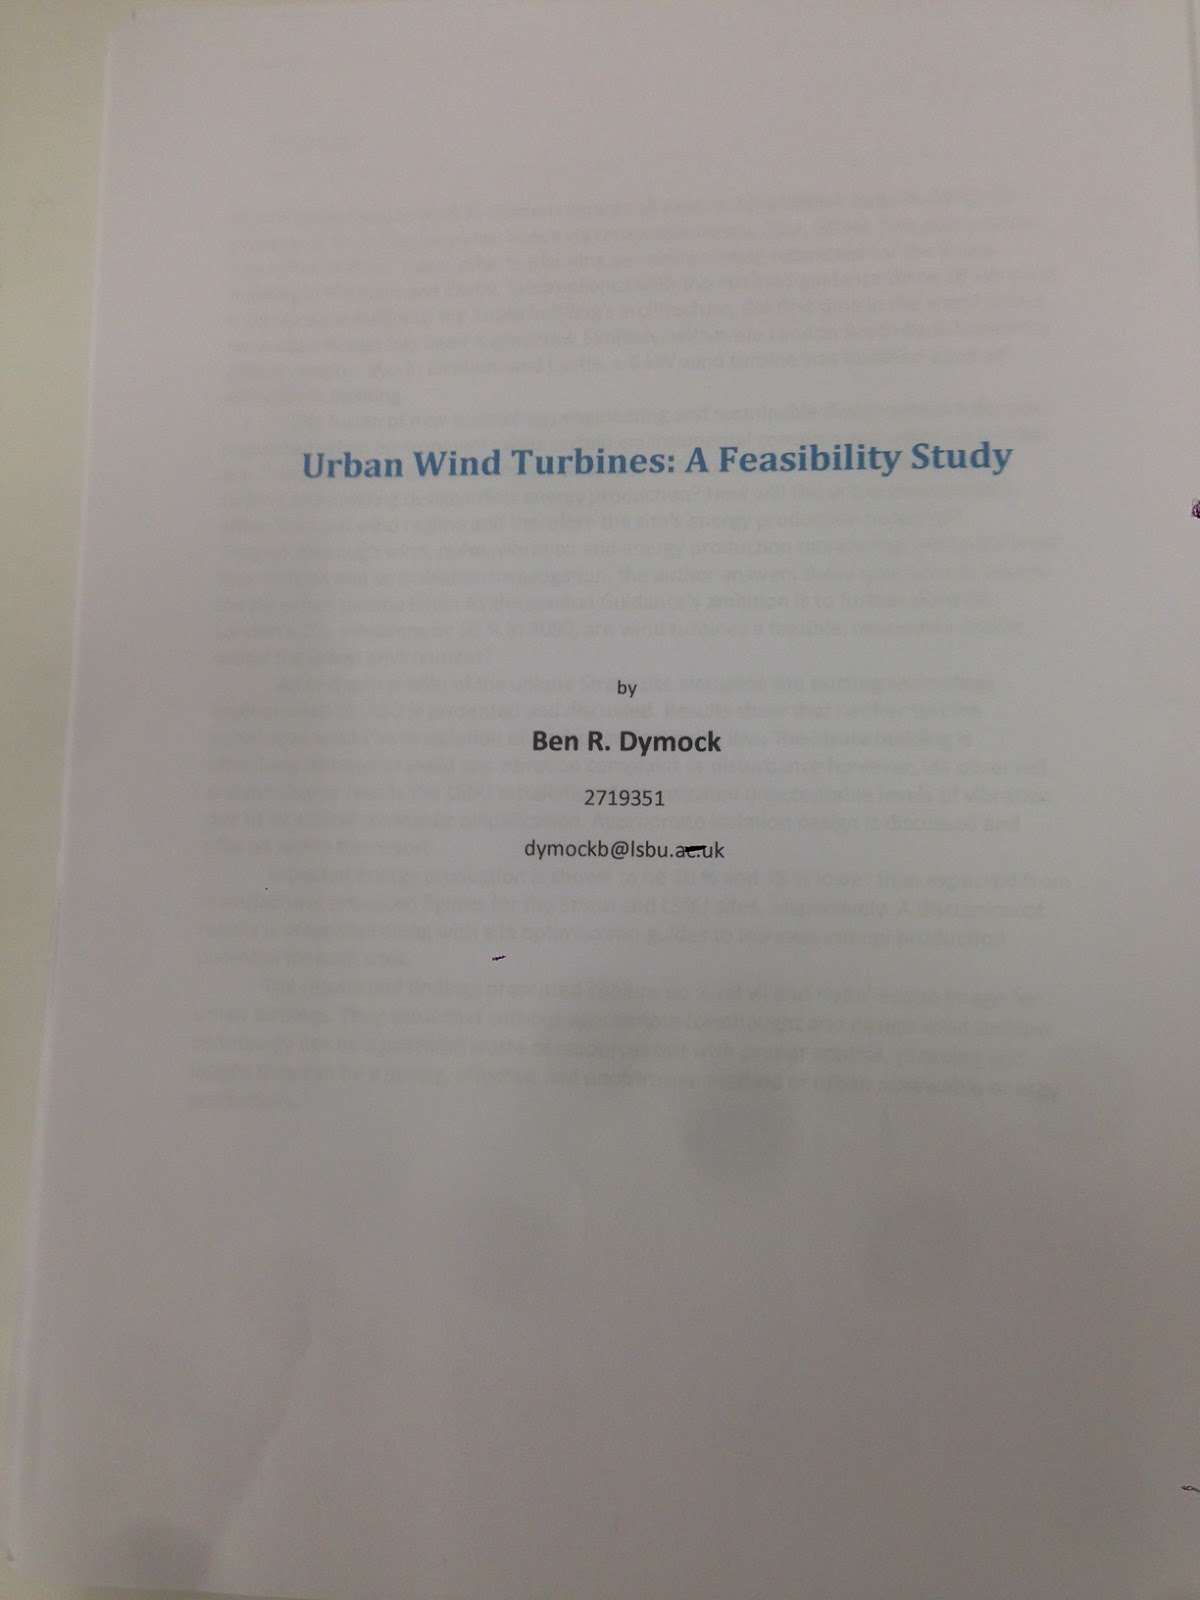 Doctoral thesis defense university of london